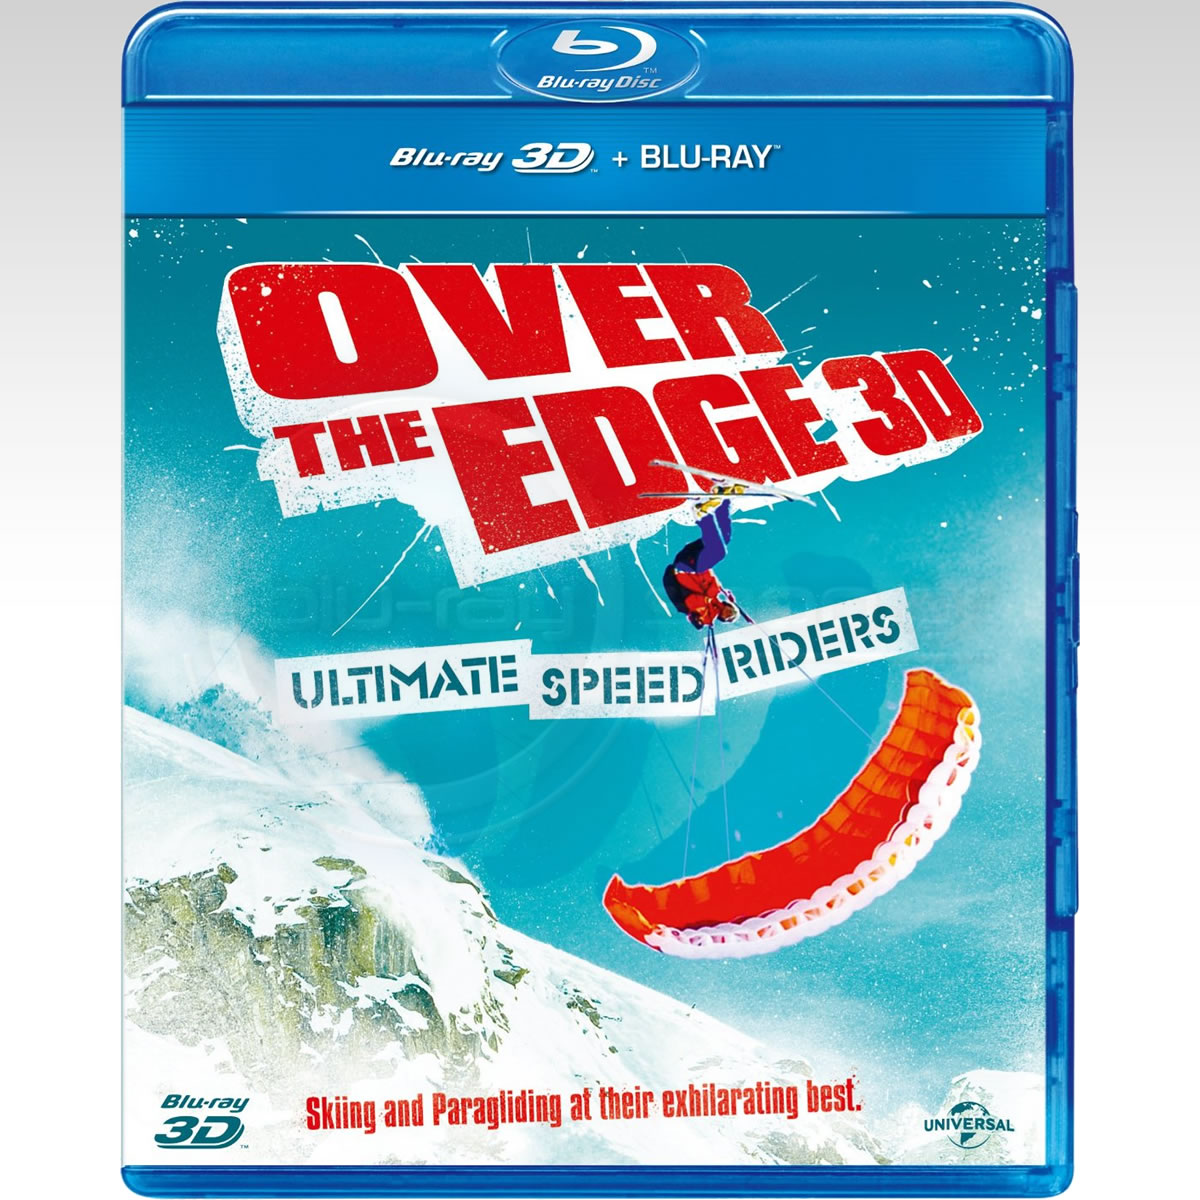 OVER THE EDGE 3D: ULTIMATE SPEED RIDERS (BLU-RAY 3D/2D)